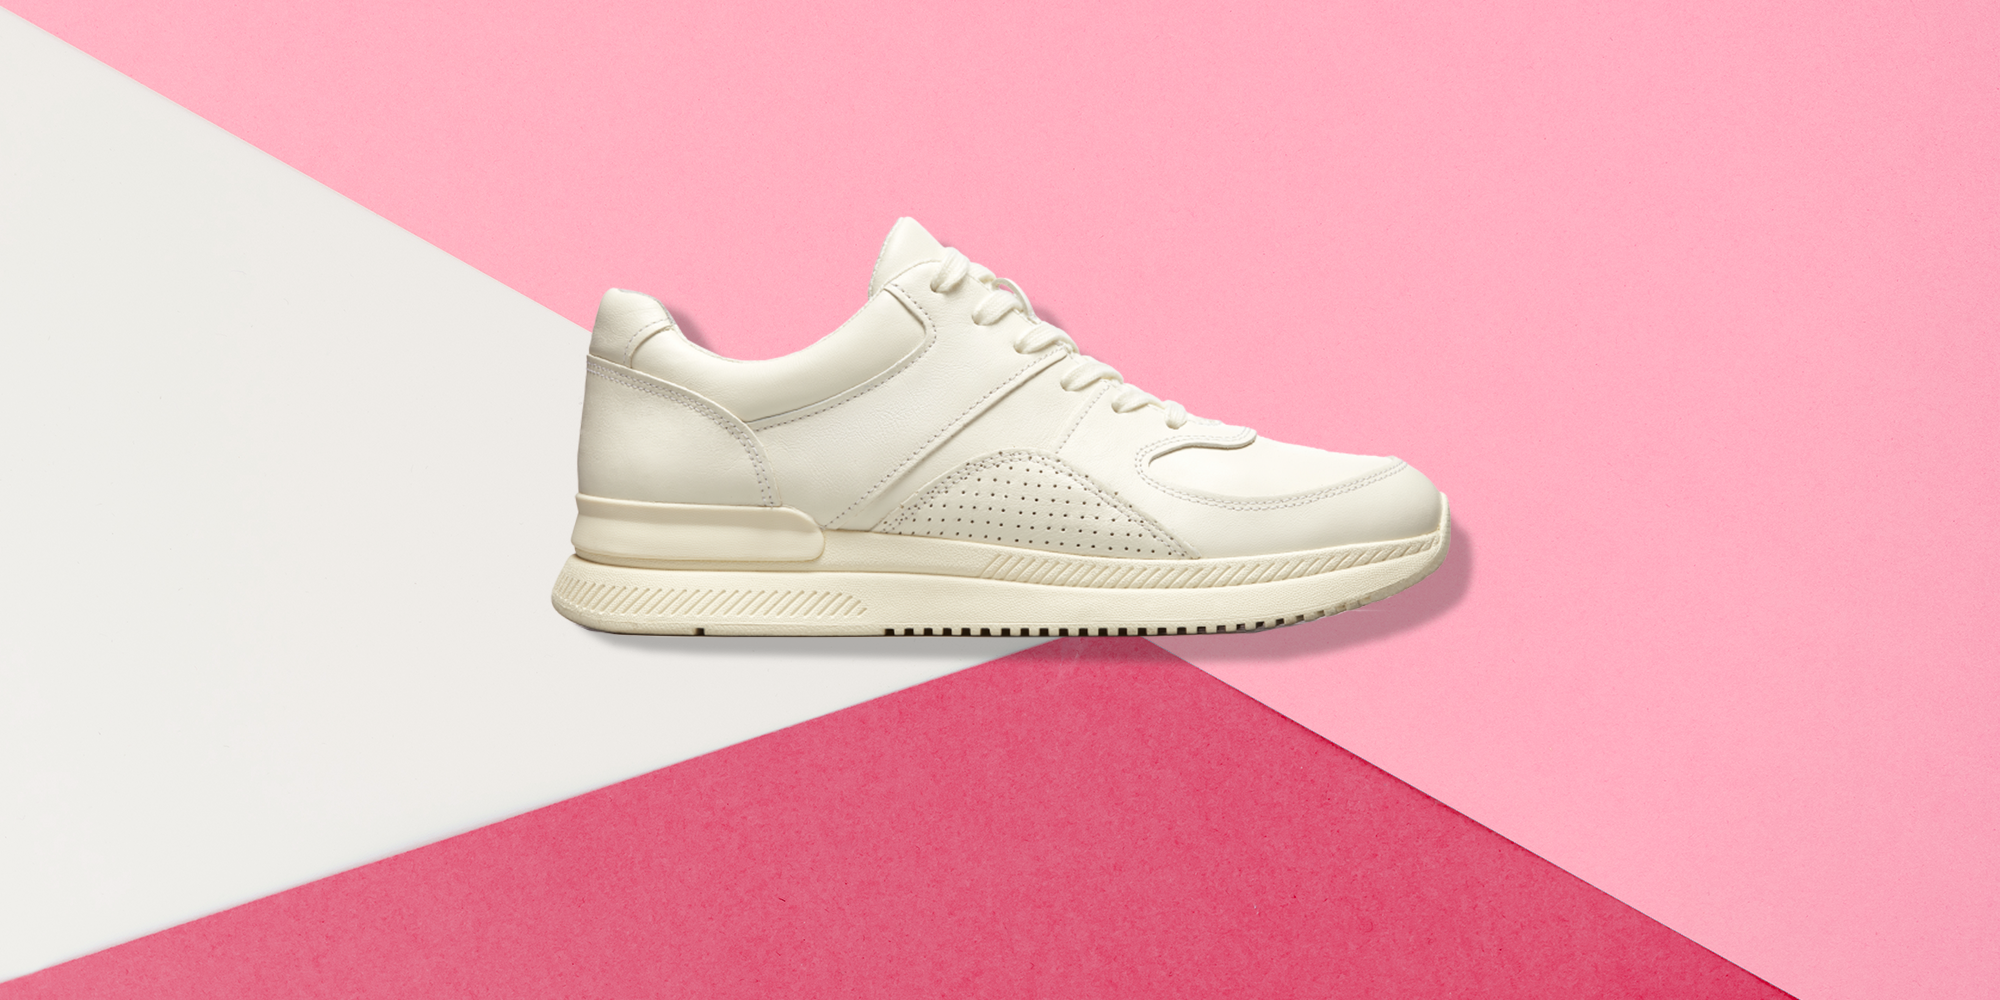 Everlane Just Launched Their Long-Awaited Unisex 'Tread' Sneakers